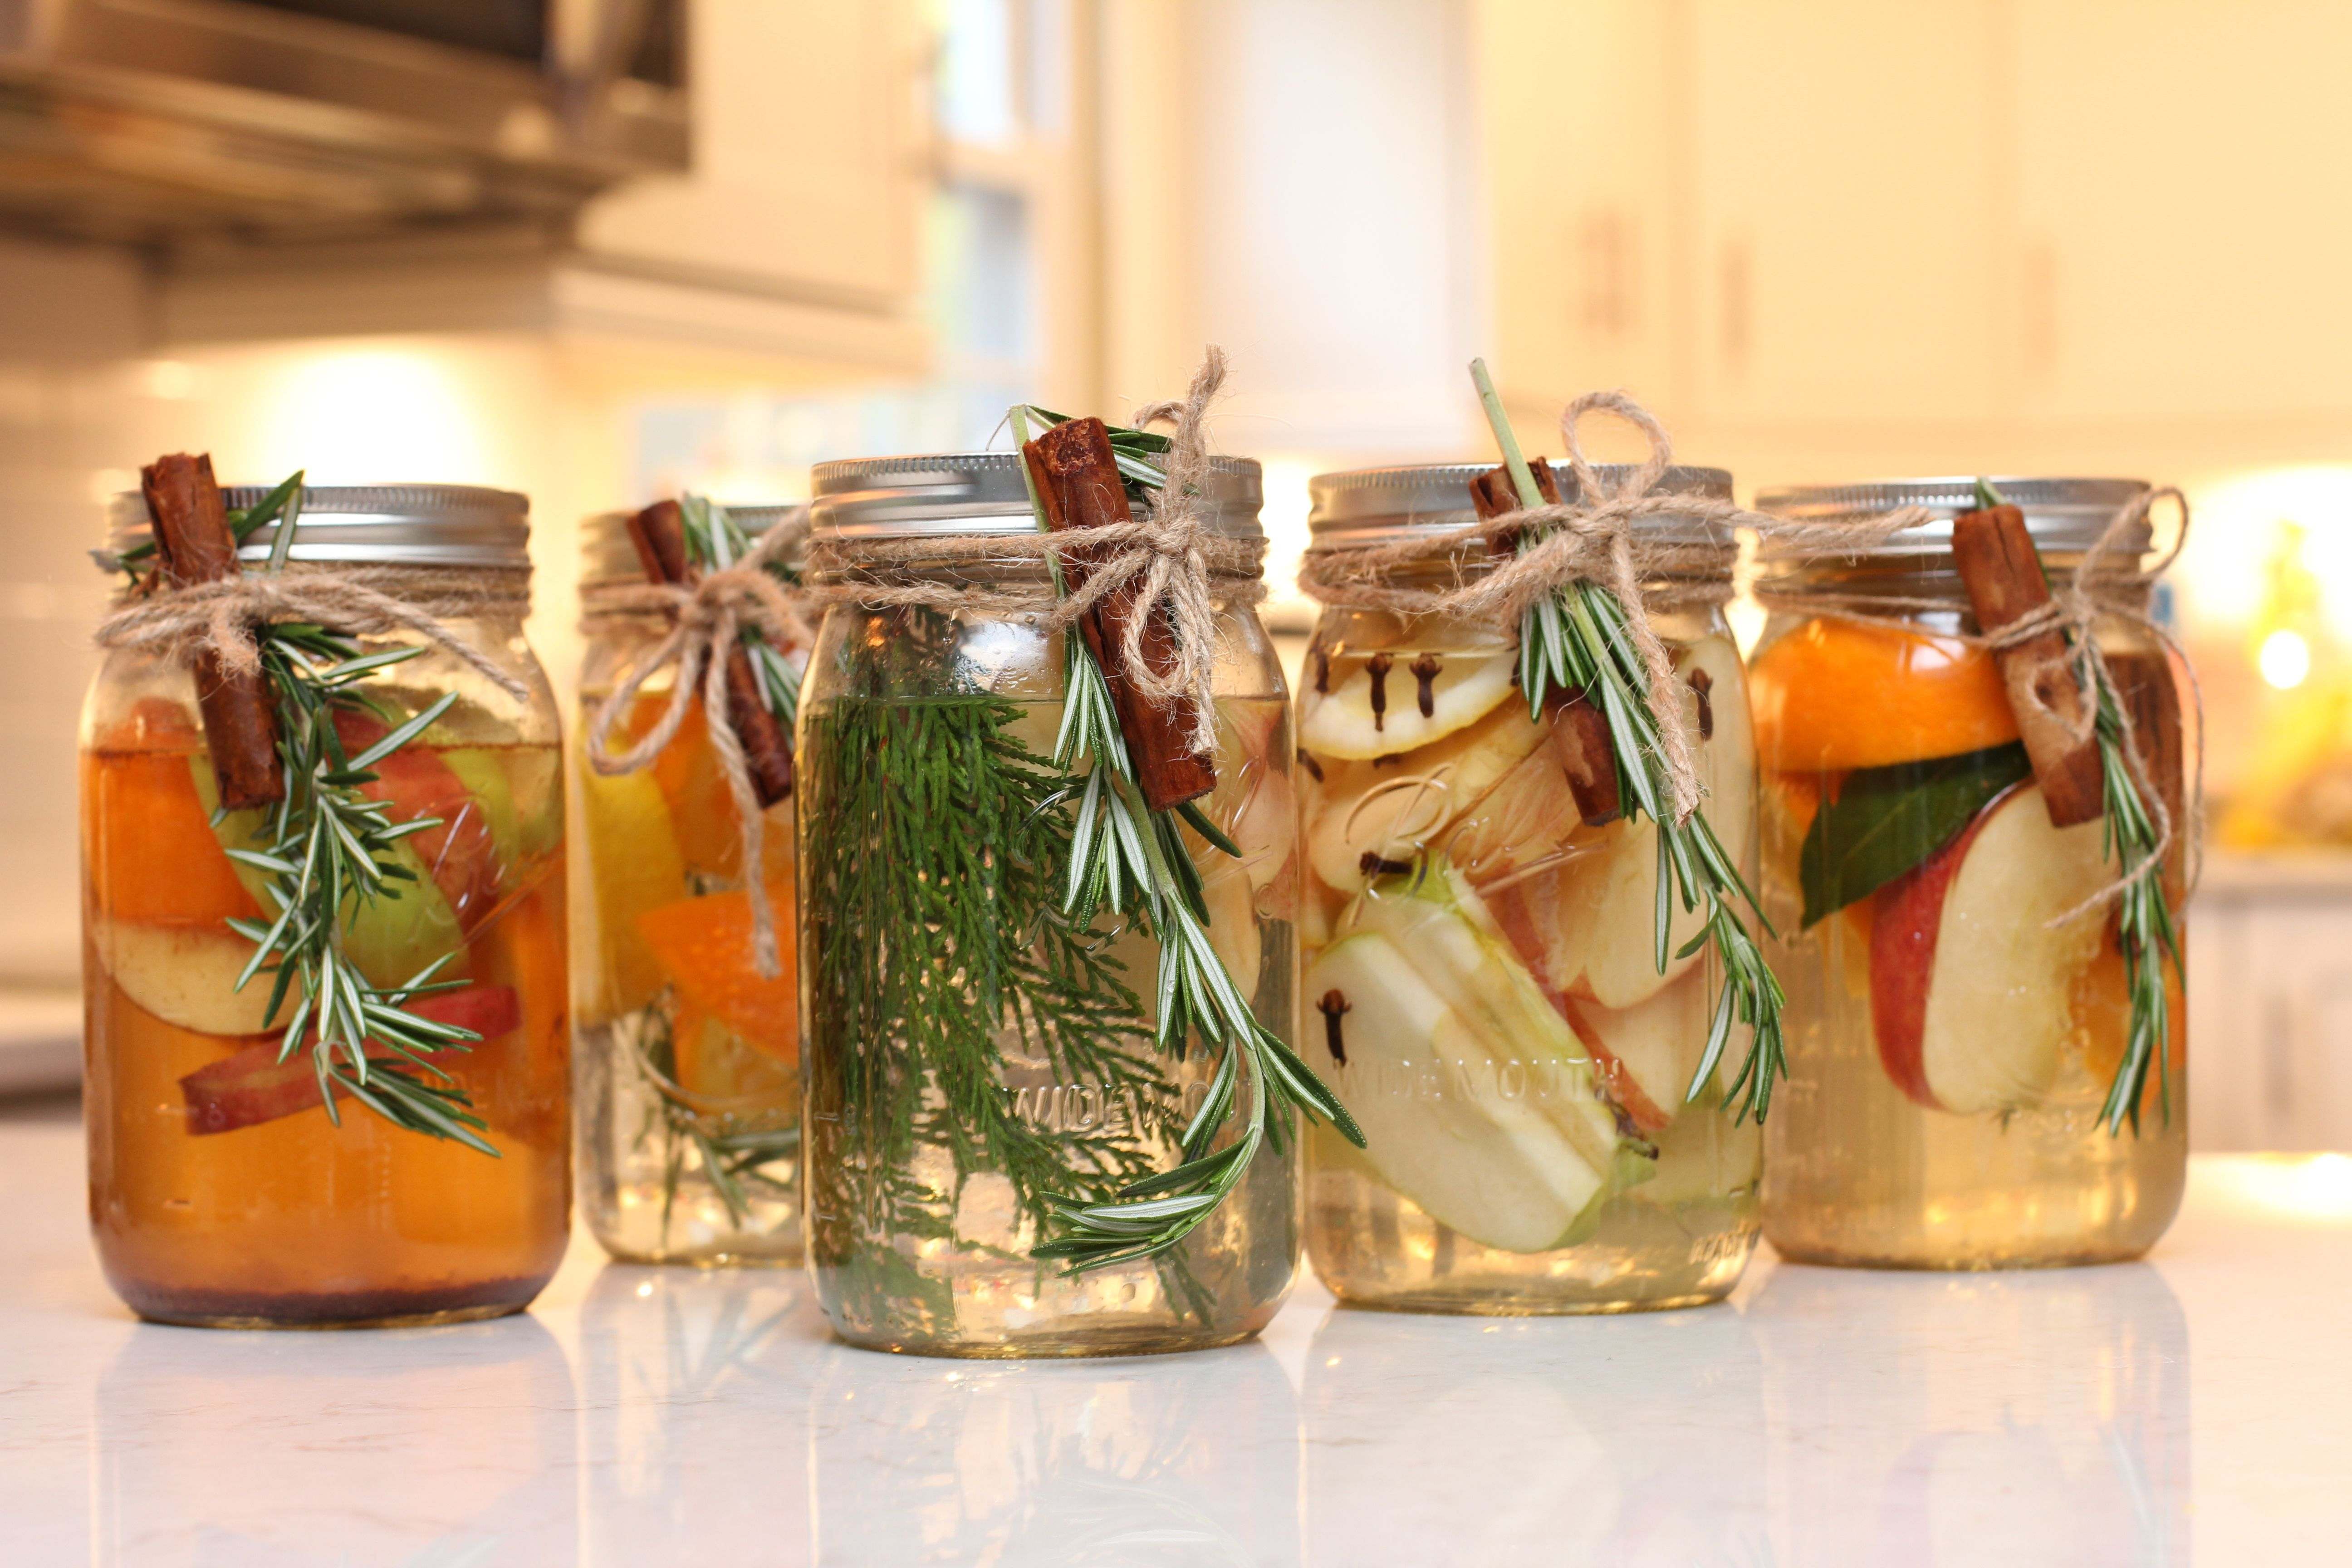 Christmas Crafts To Sell At Craft Fairs.Mason Jar Potpourri Easy Christmas Crafts To Make Sell